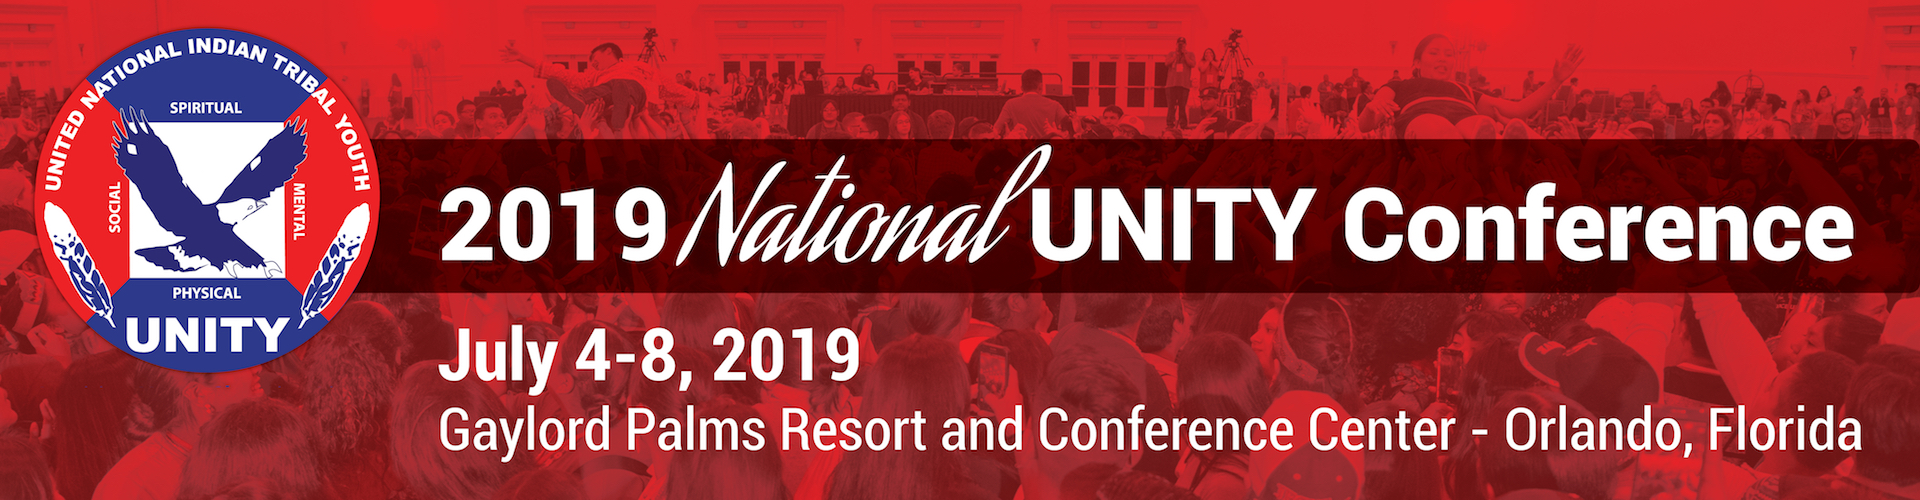 2019 National UNITY Conference